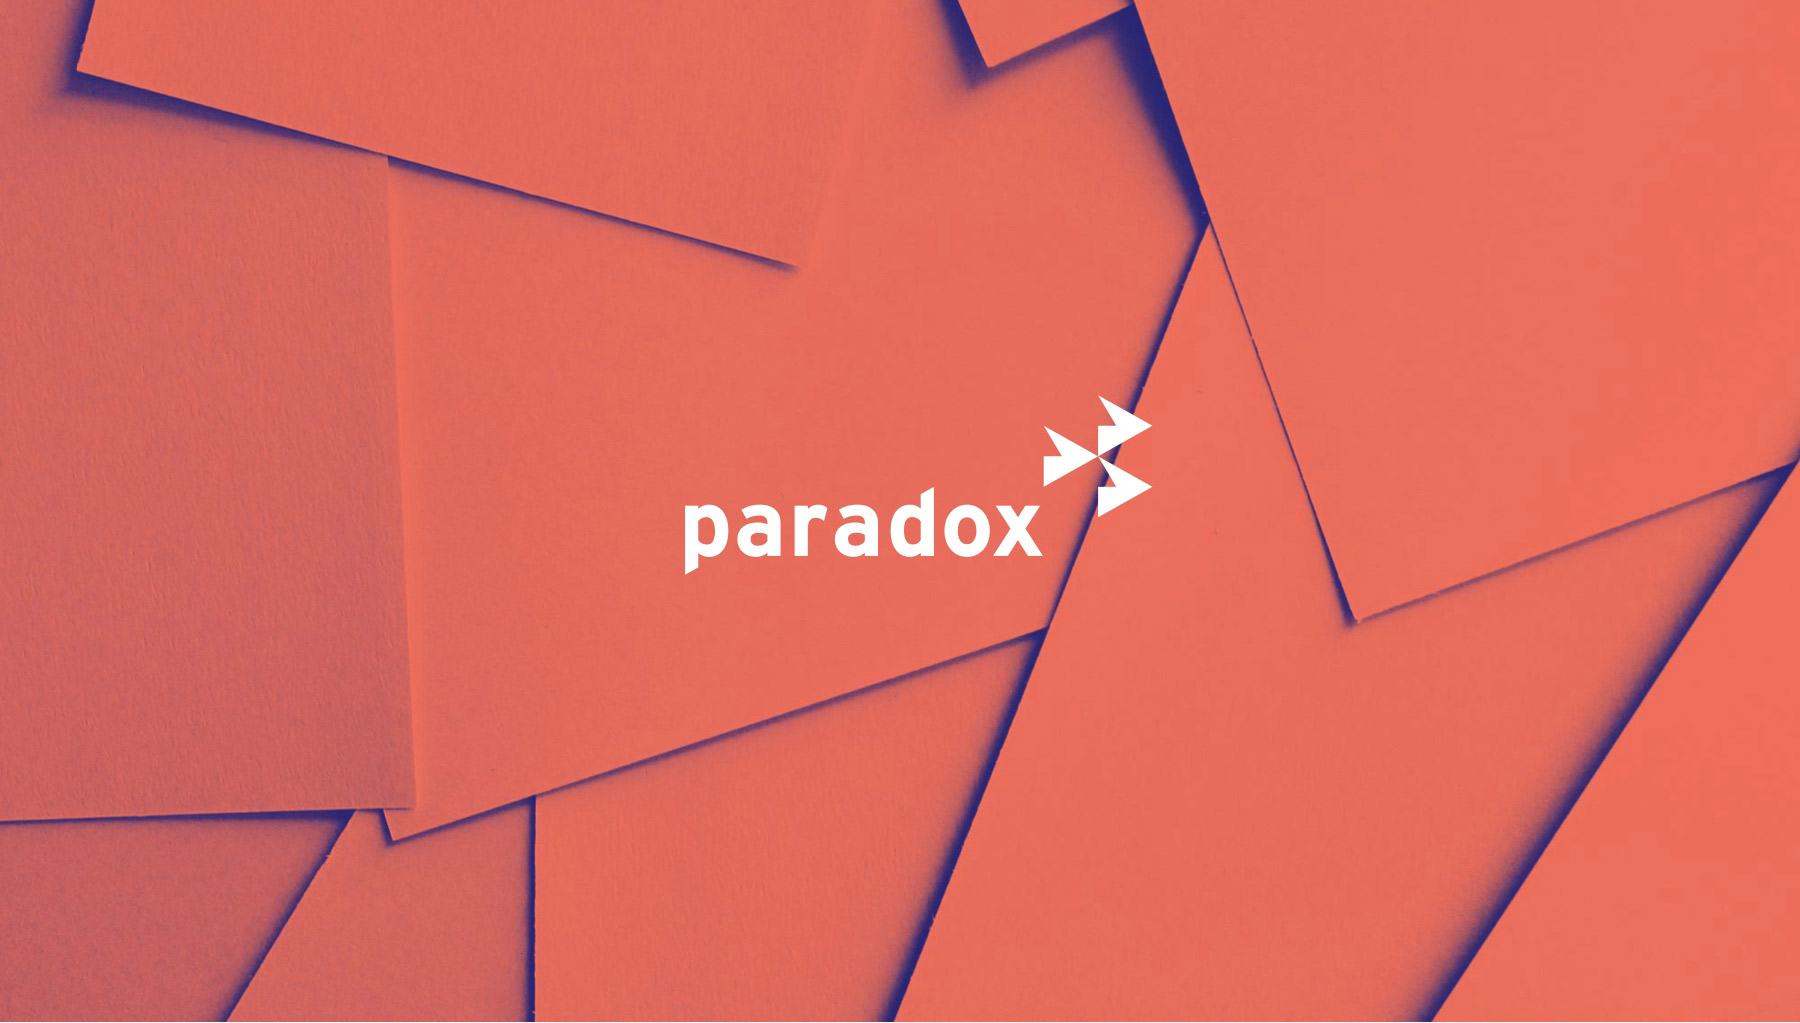 paradox retail white logo with duotone textured background